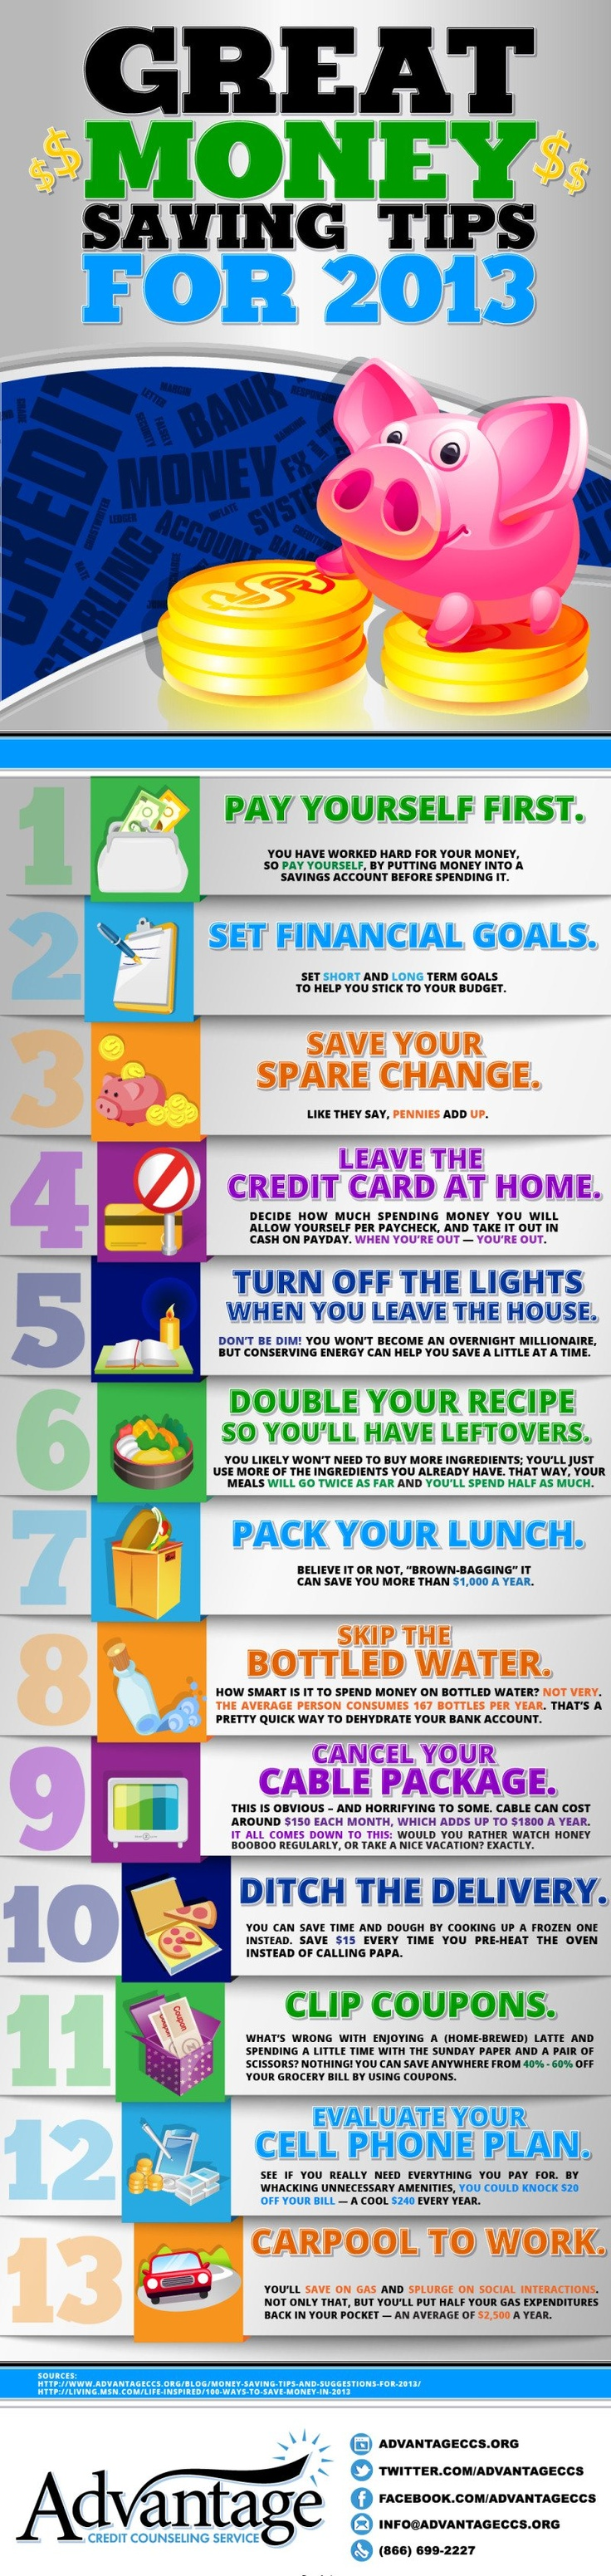 29 best 2013 financial resolutions images on pinterest personal great money saving tips for 2013 an infographic on managing money infographic fandeluxe Choice Image